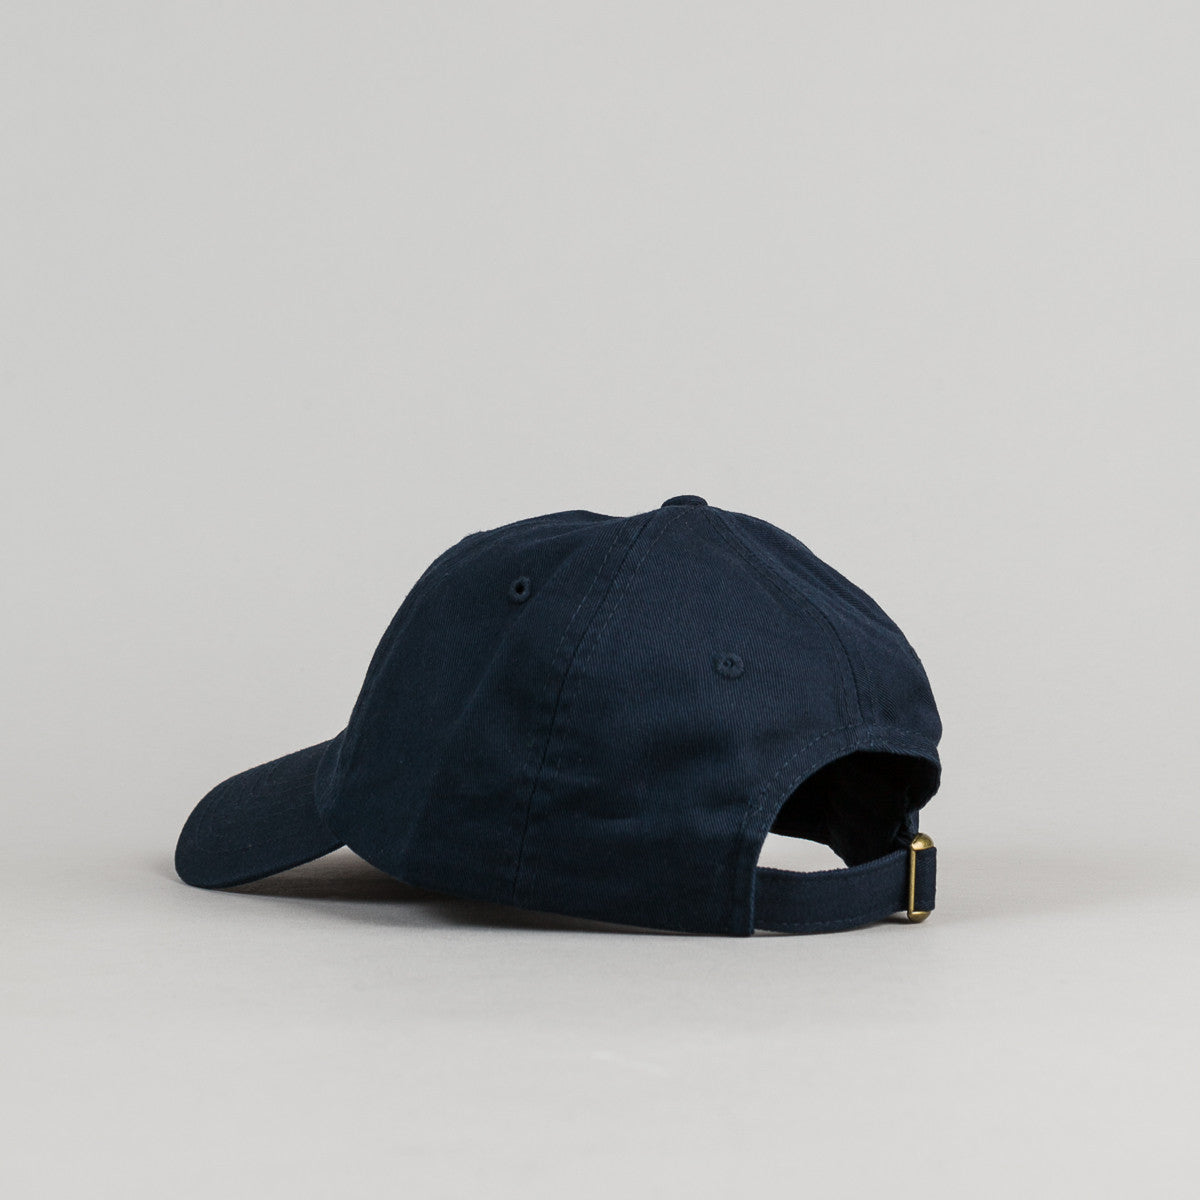 Pizza Skateboards Emoji Delivery Boy Cap - Navy